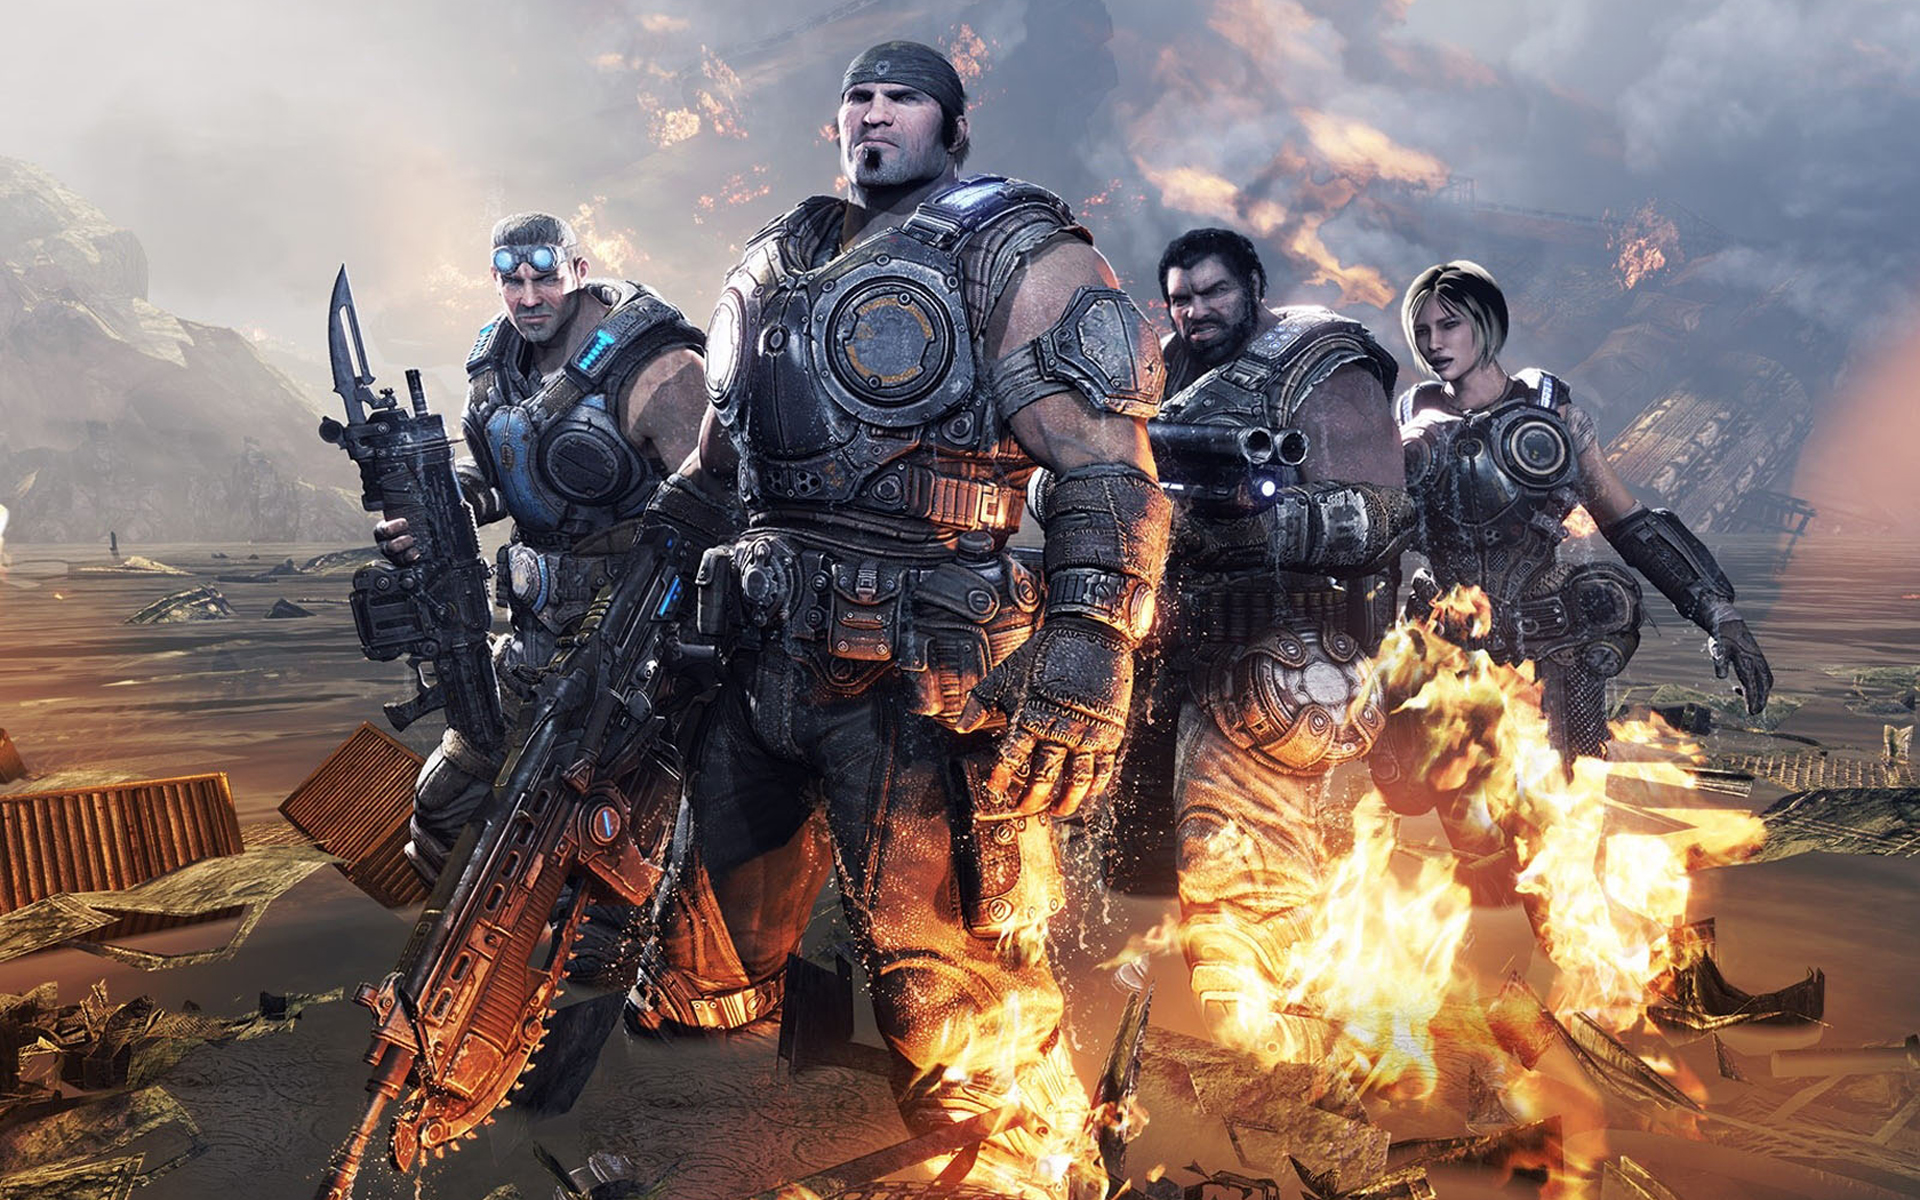 Gears Of War 3 Hd Wallpapers For Android: Gears Of War 3 Full HD Wallpaper And Background Image